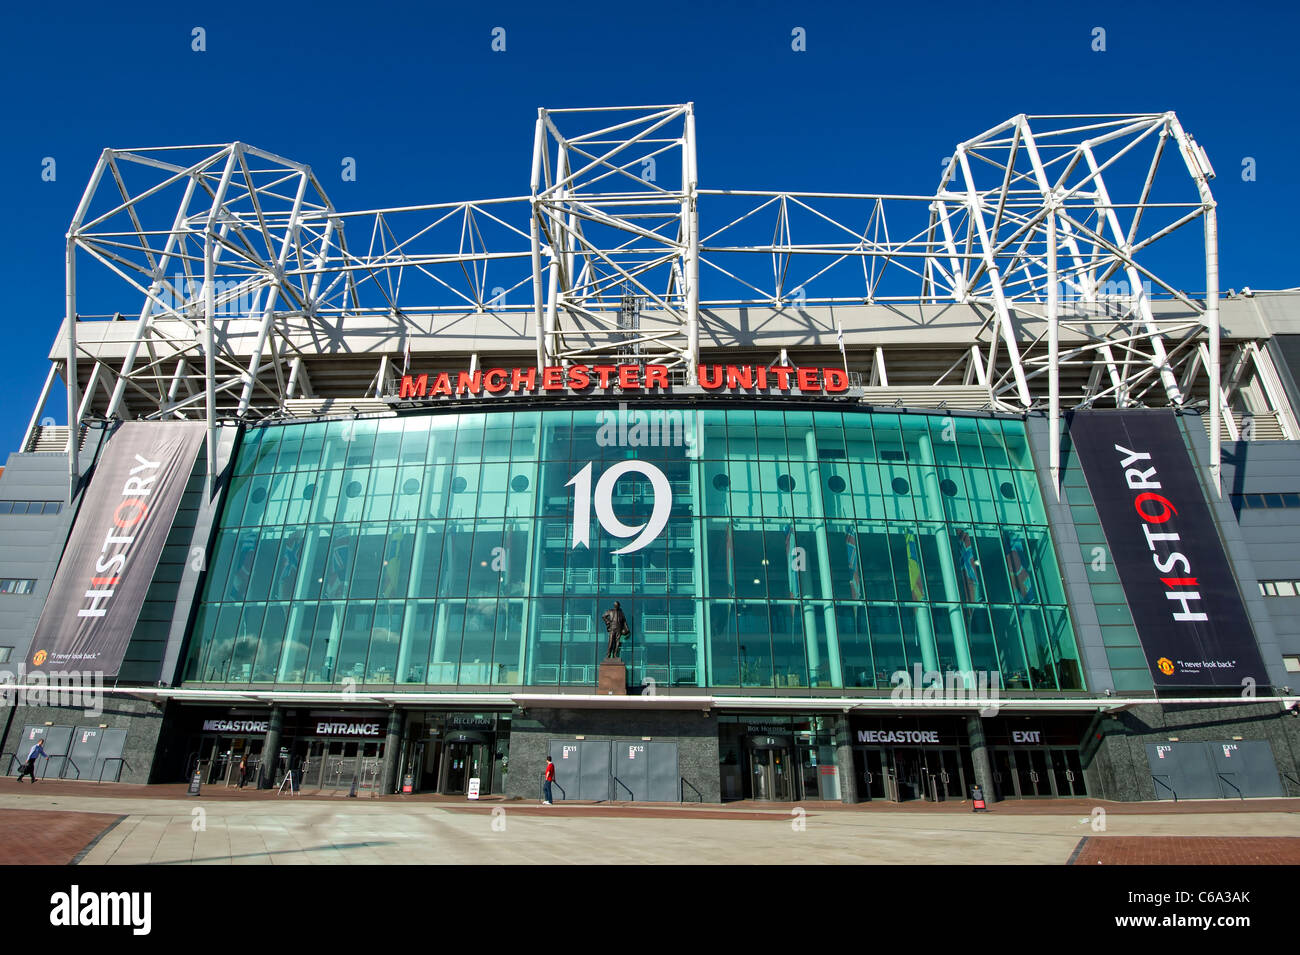 Main entrance of Manchester United Football Club's ground at Old Trafford in Manchester, England. - Stock Image